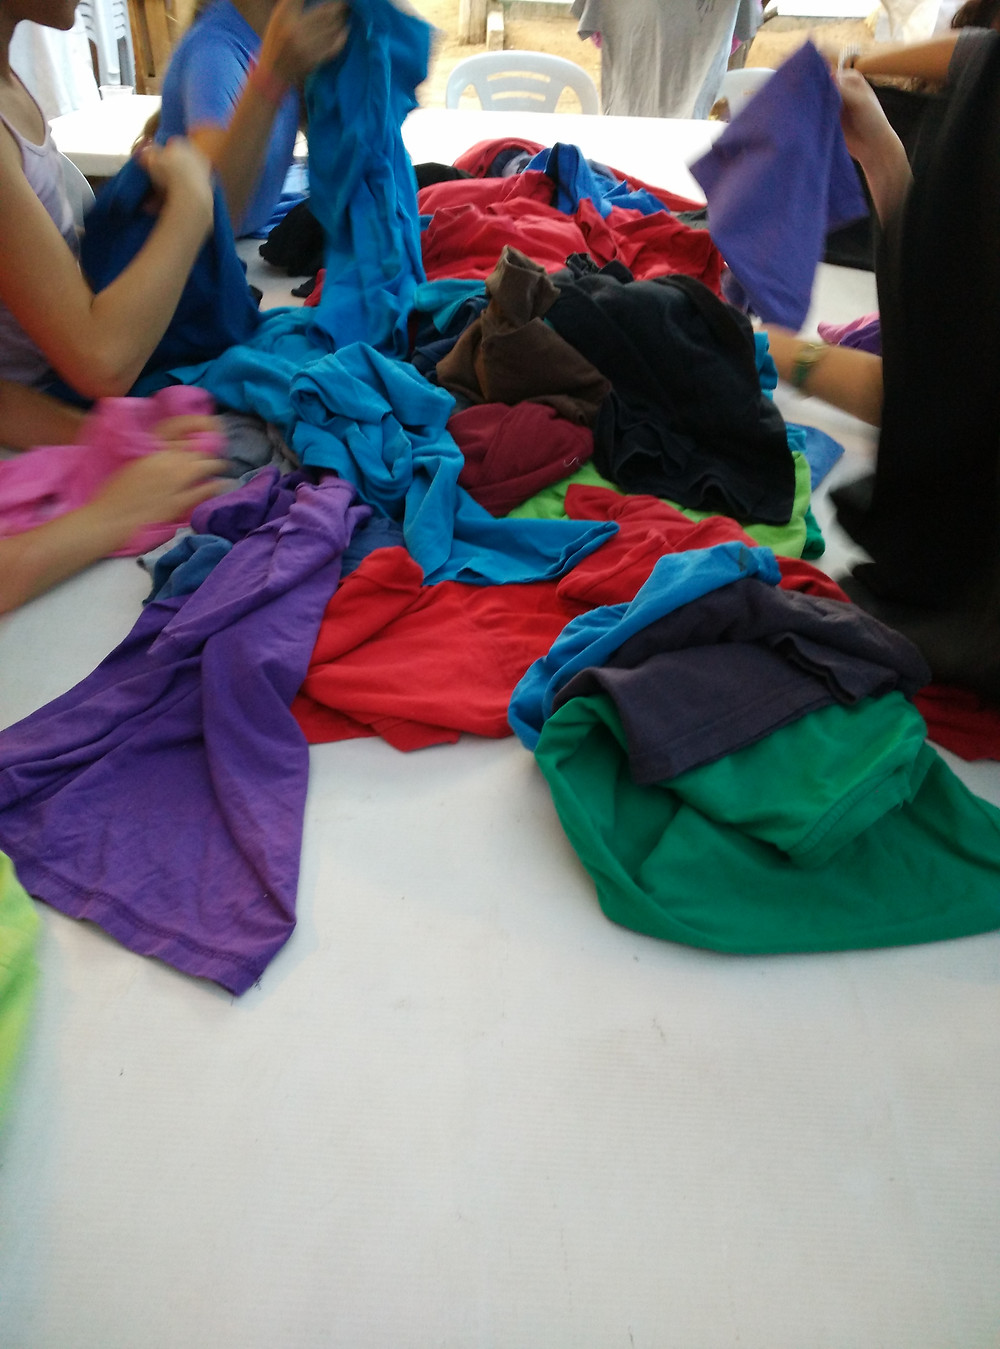 Pile of t shirts for upcycling